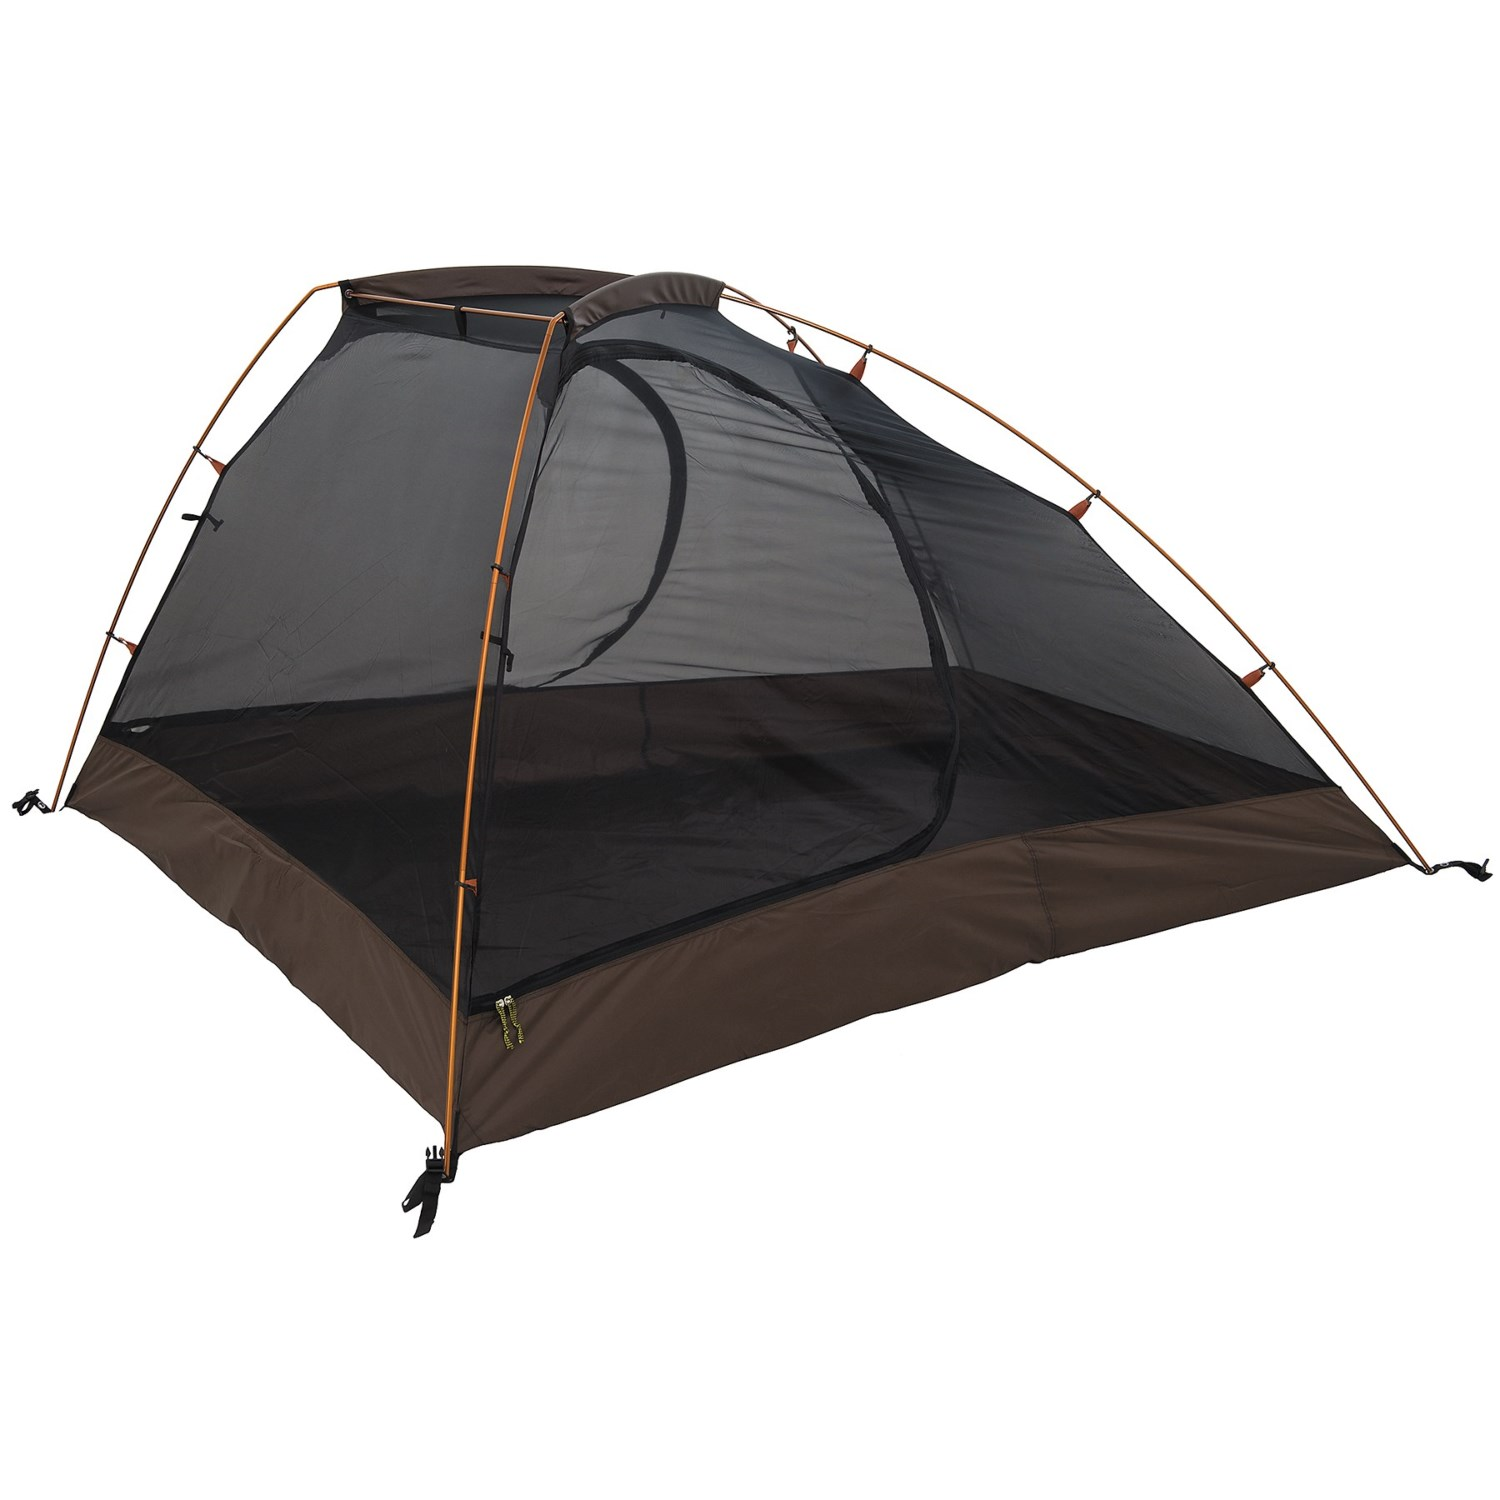 Two Person Tent : Alps mountaineering zenith al tent person season